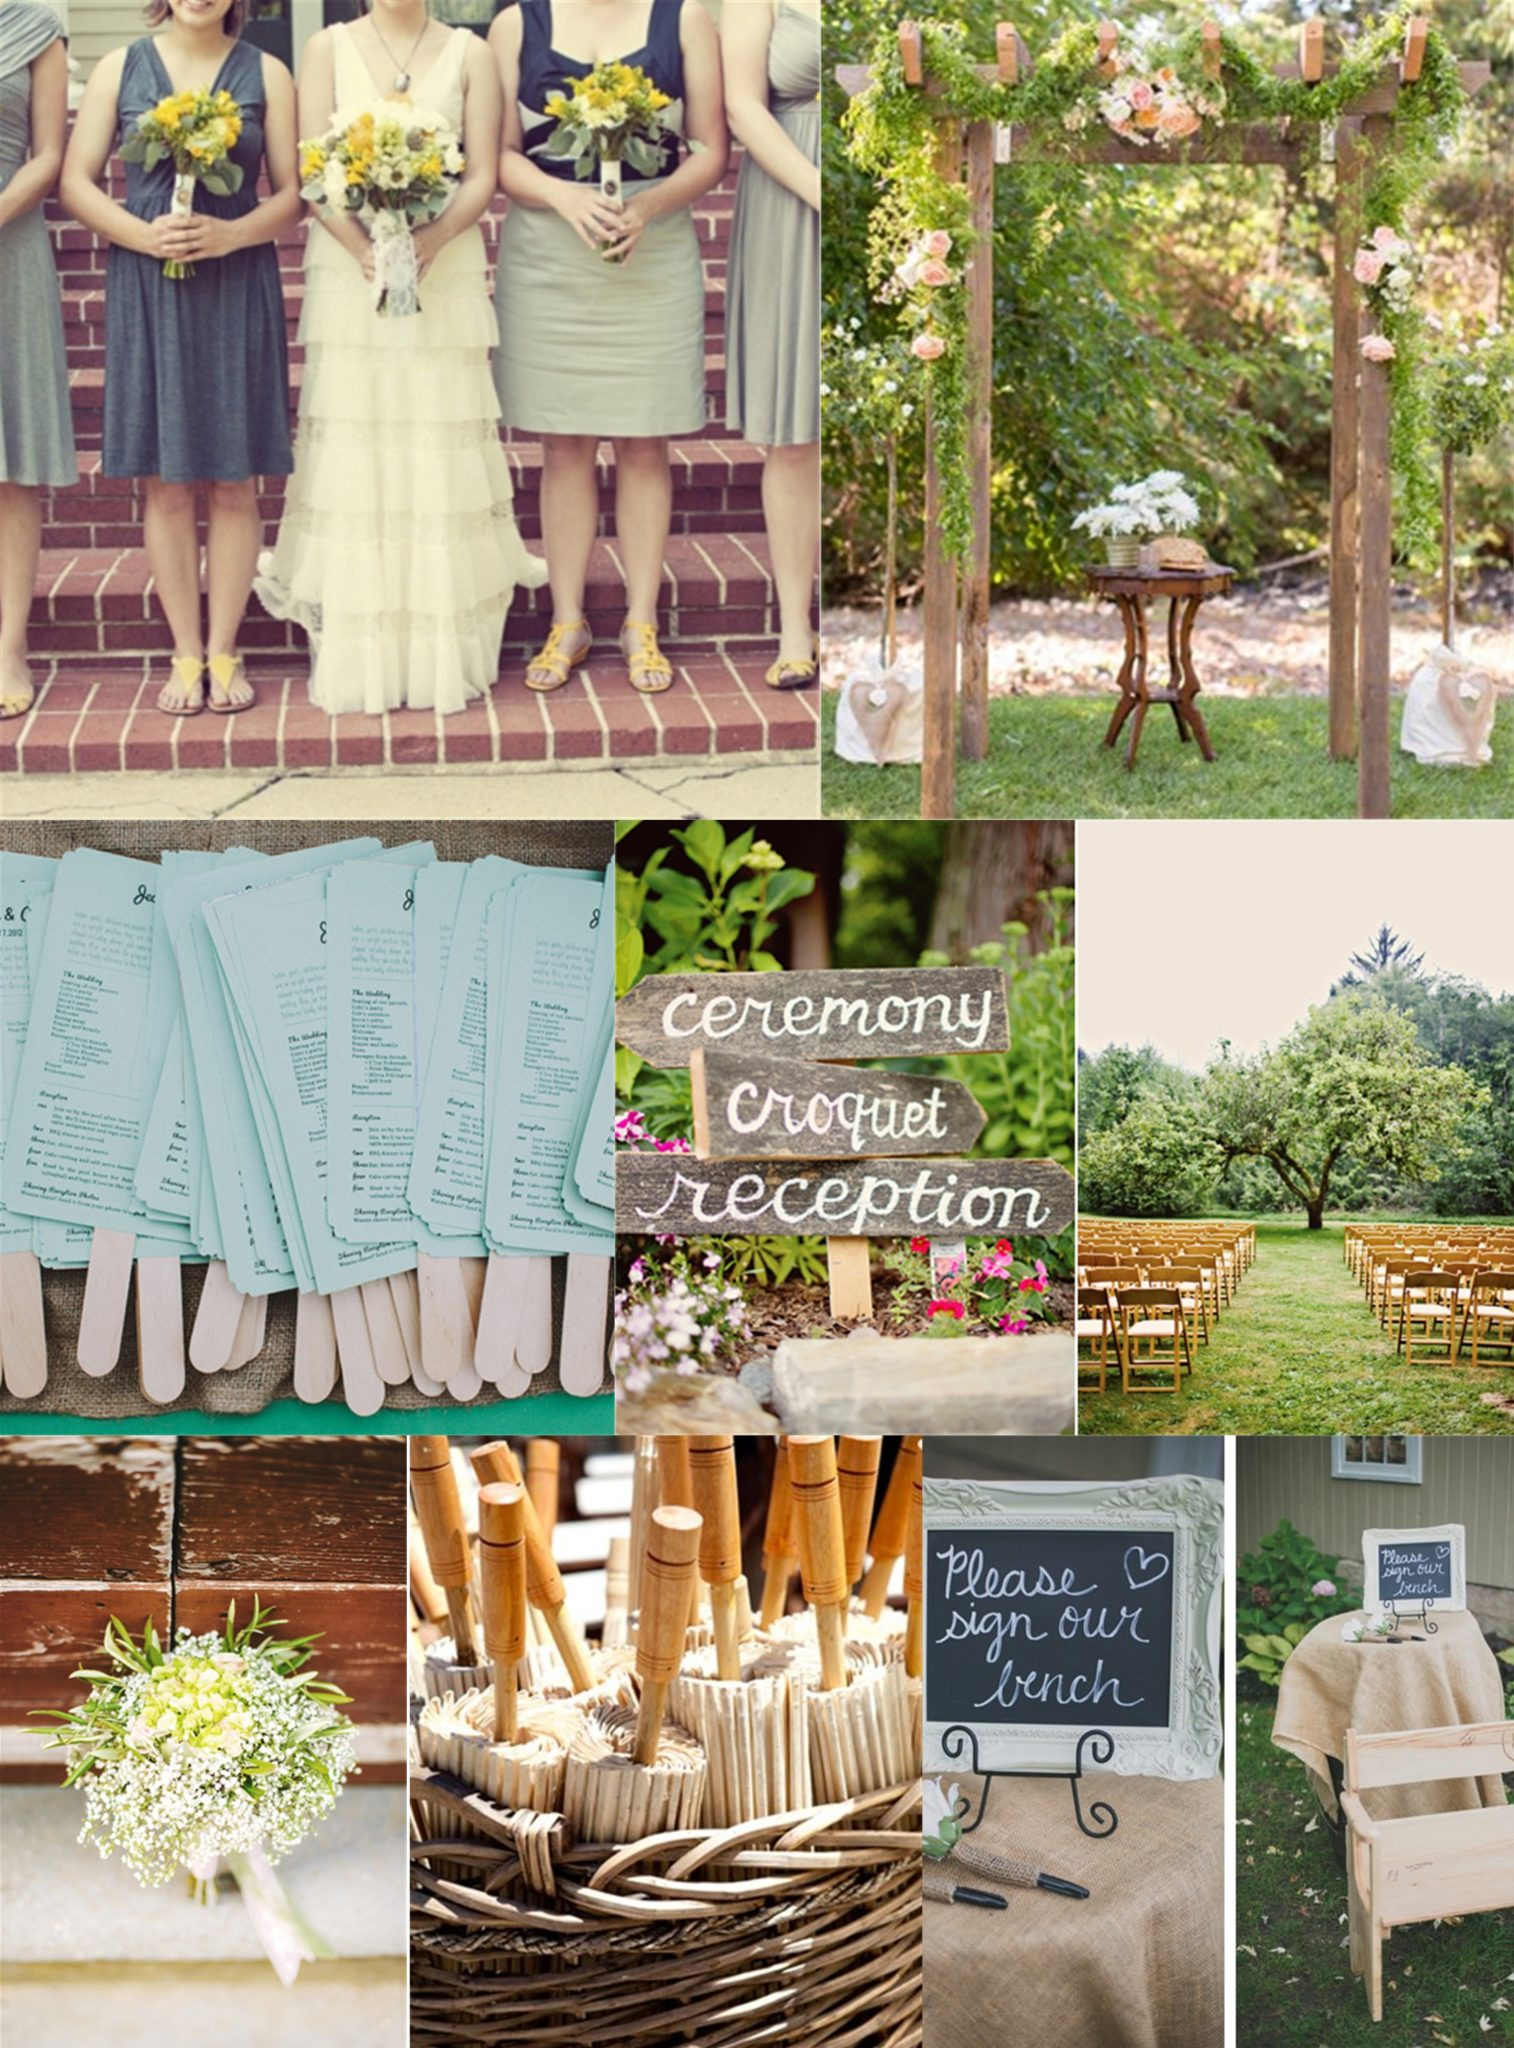 Essential Guide To A Backyard Wedding On A Budget intended for Small Backyard Wedding Ideas On A Budget